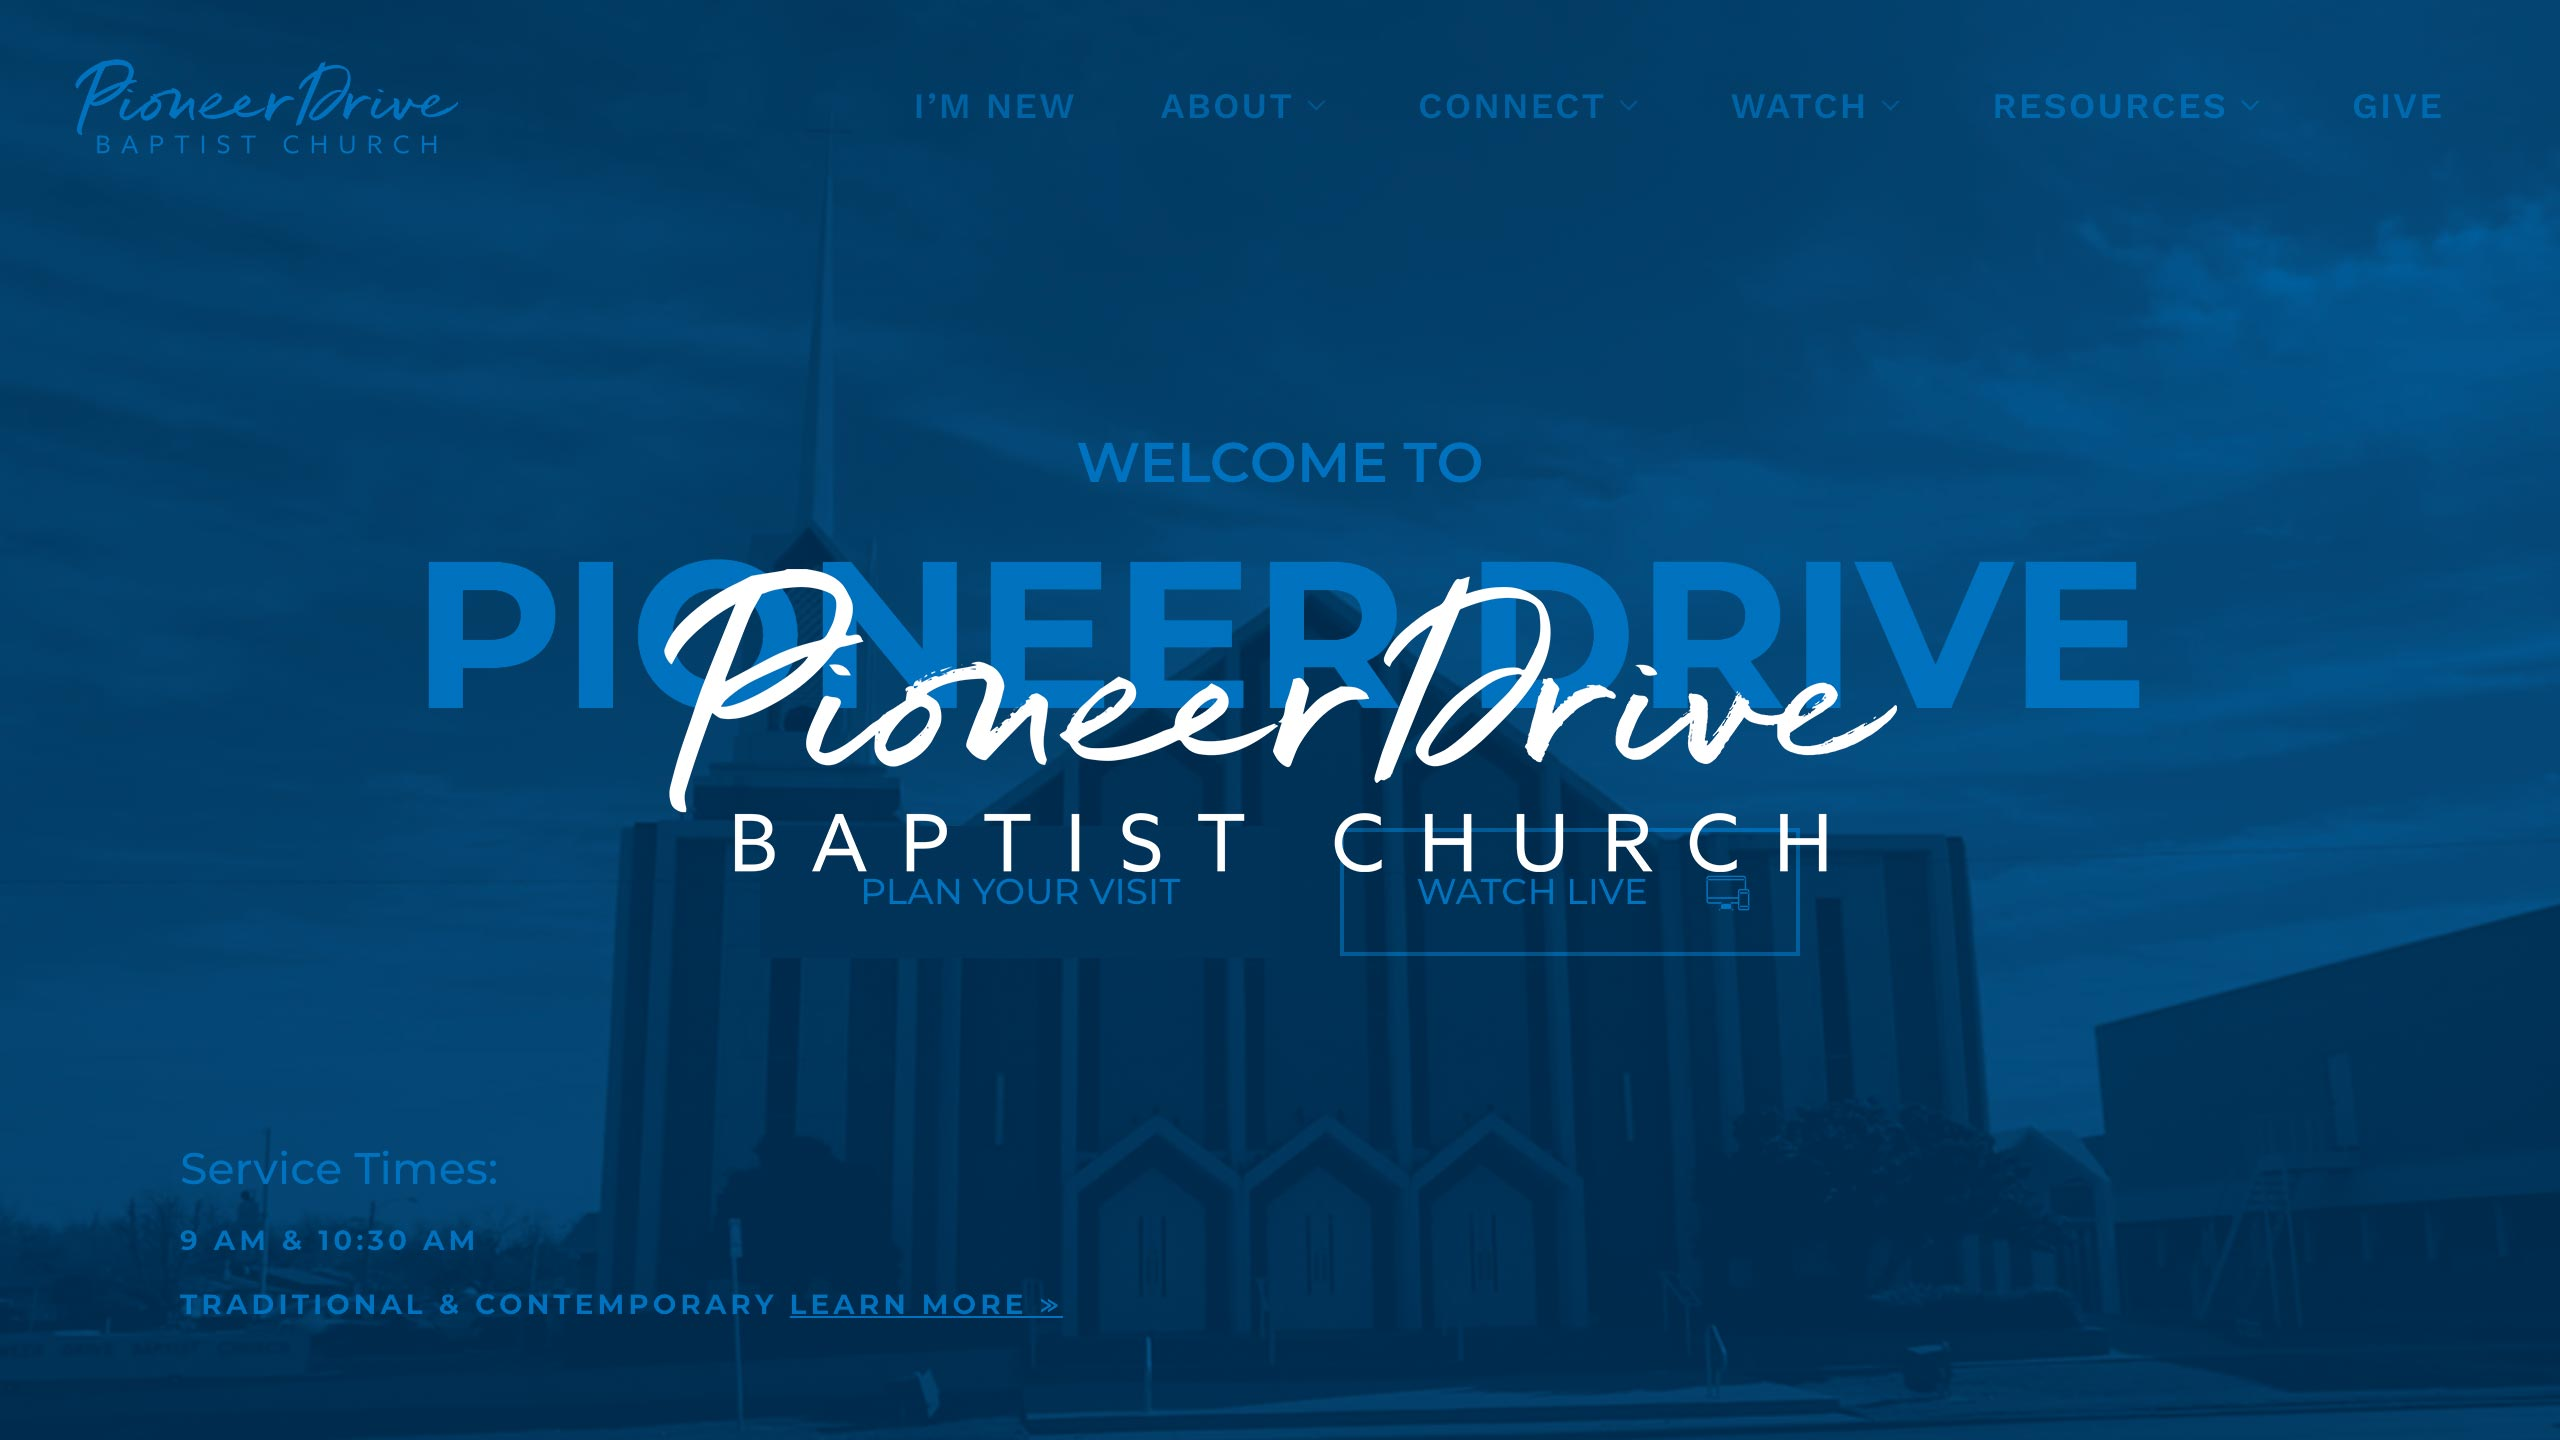 Web Development – Pioneer Drive Baptist Church